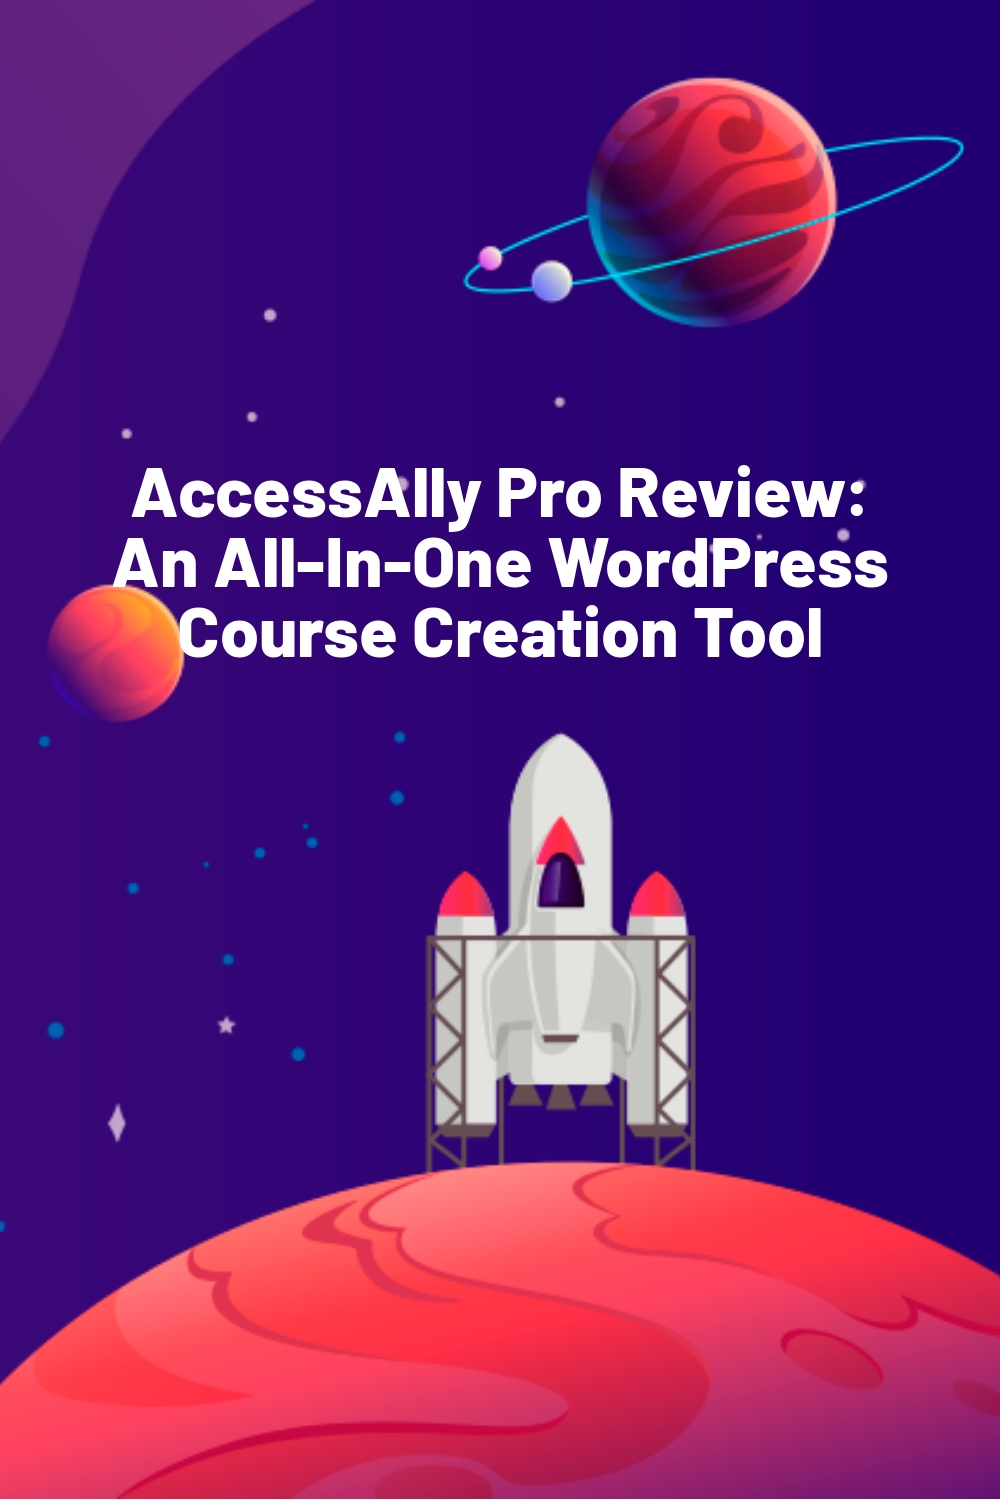 AccessAlly Pro Review: An All-In-One WordPress Course Creation Tool